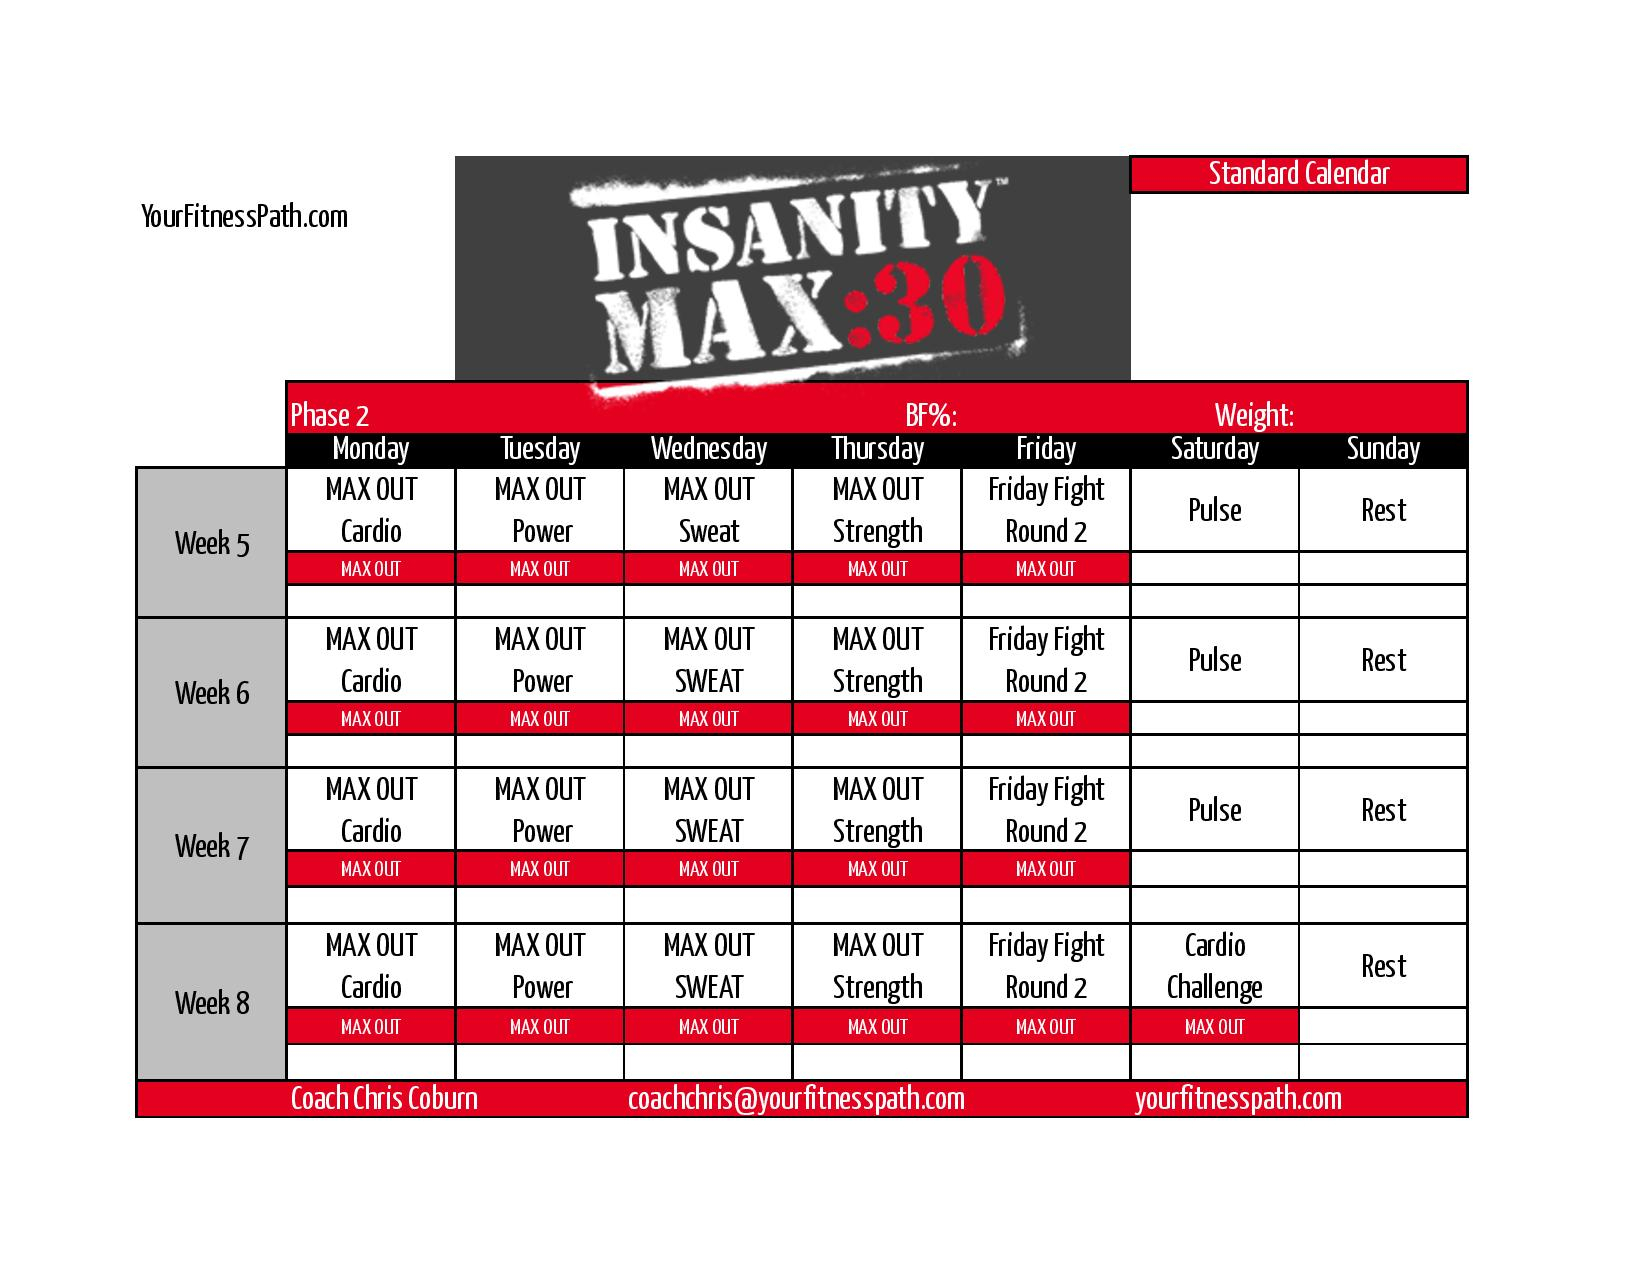 ✅Insanity Max 30 Calendar  You Calendars for Insanity Max 30 Calendar